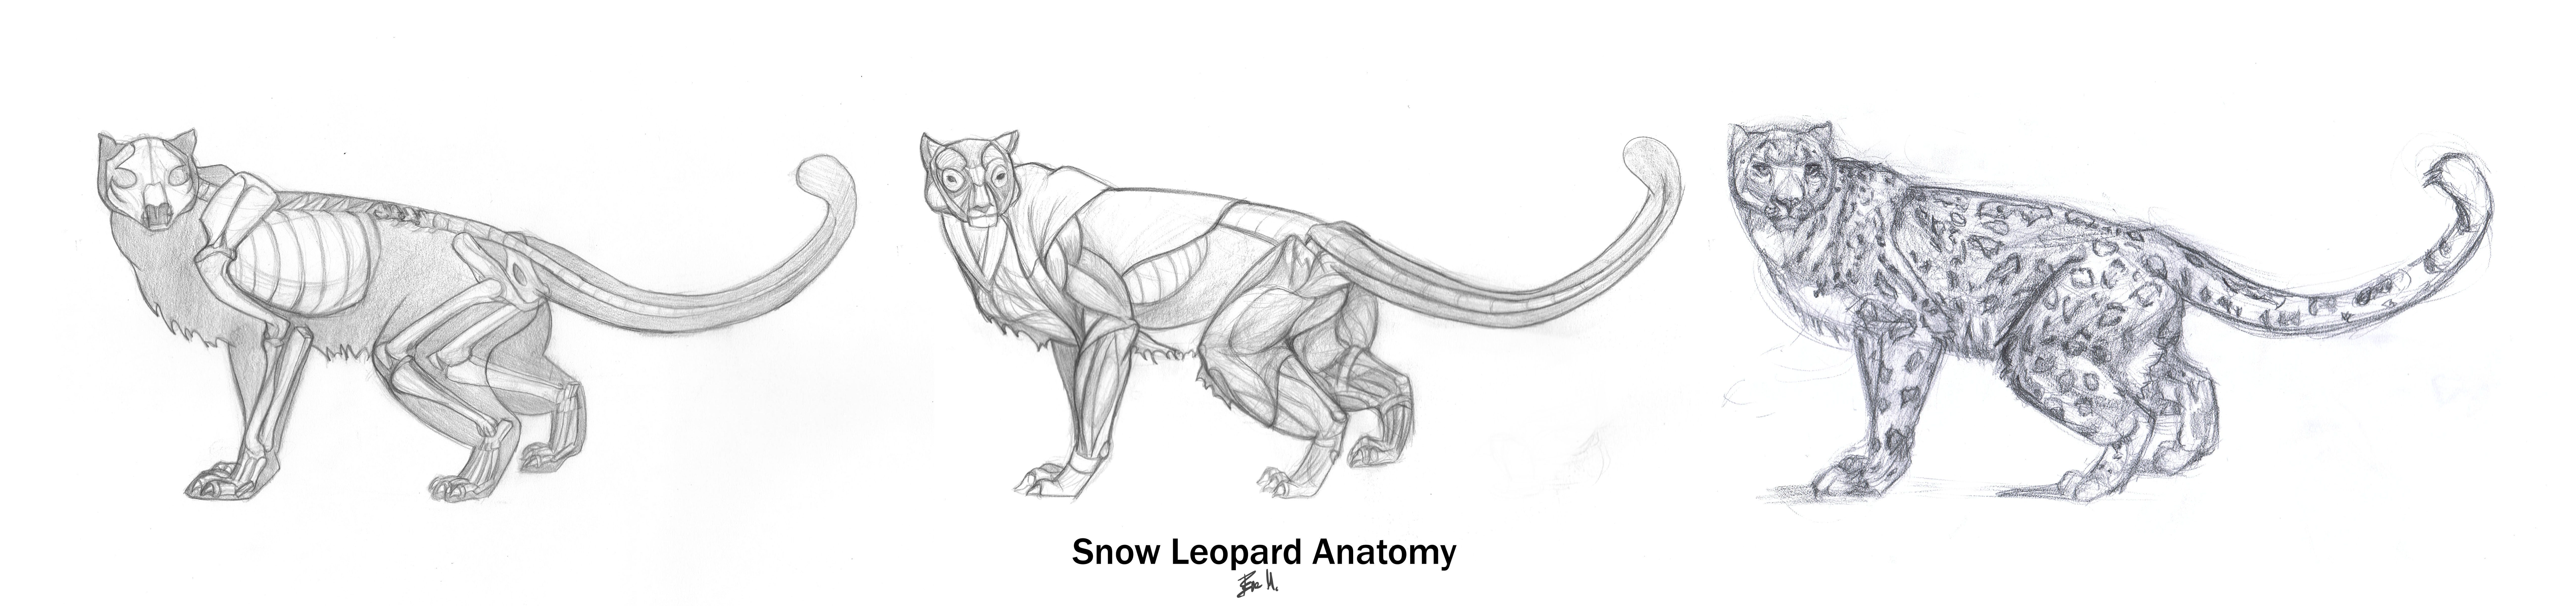 Animal Anatomy: Snow Leopard by 89ravenclaw.deviantart.com on ...